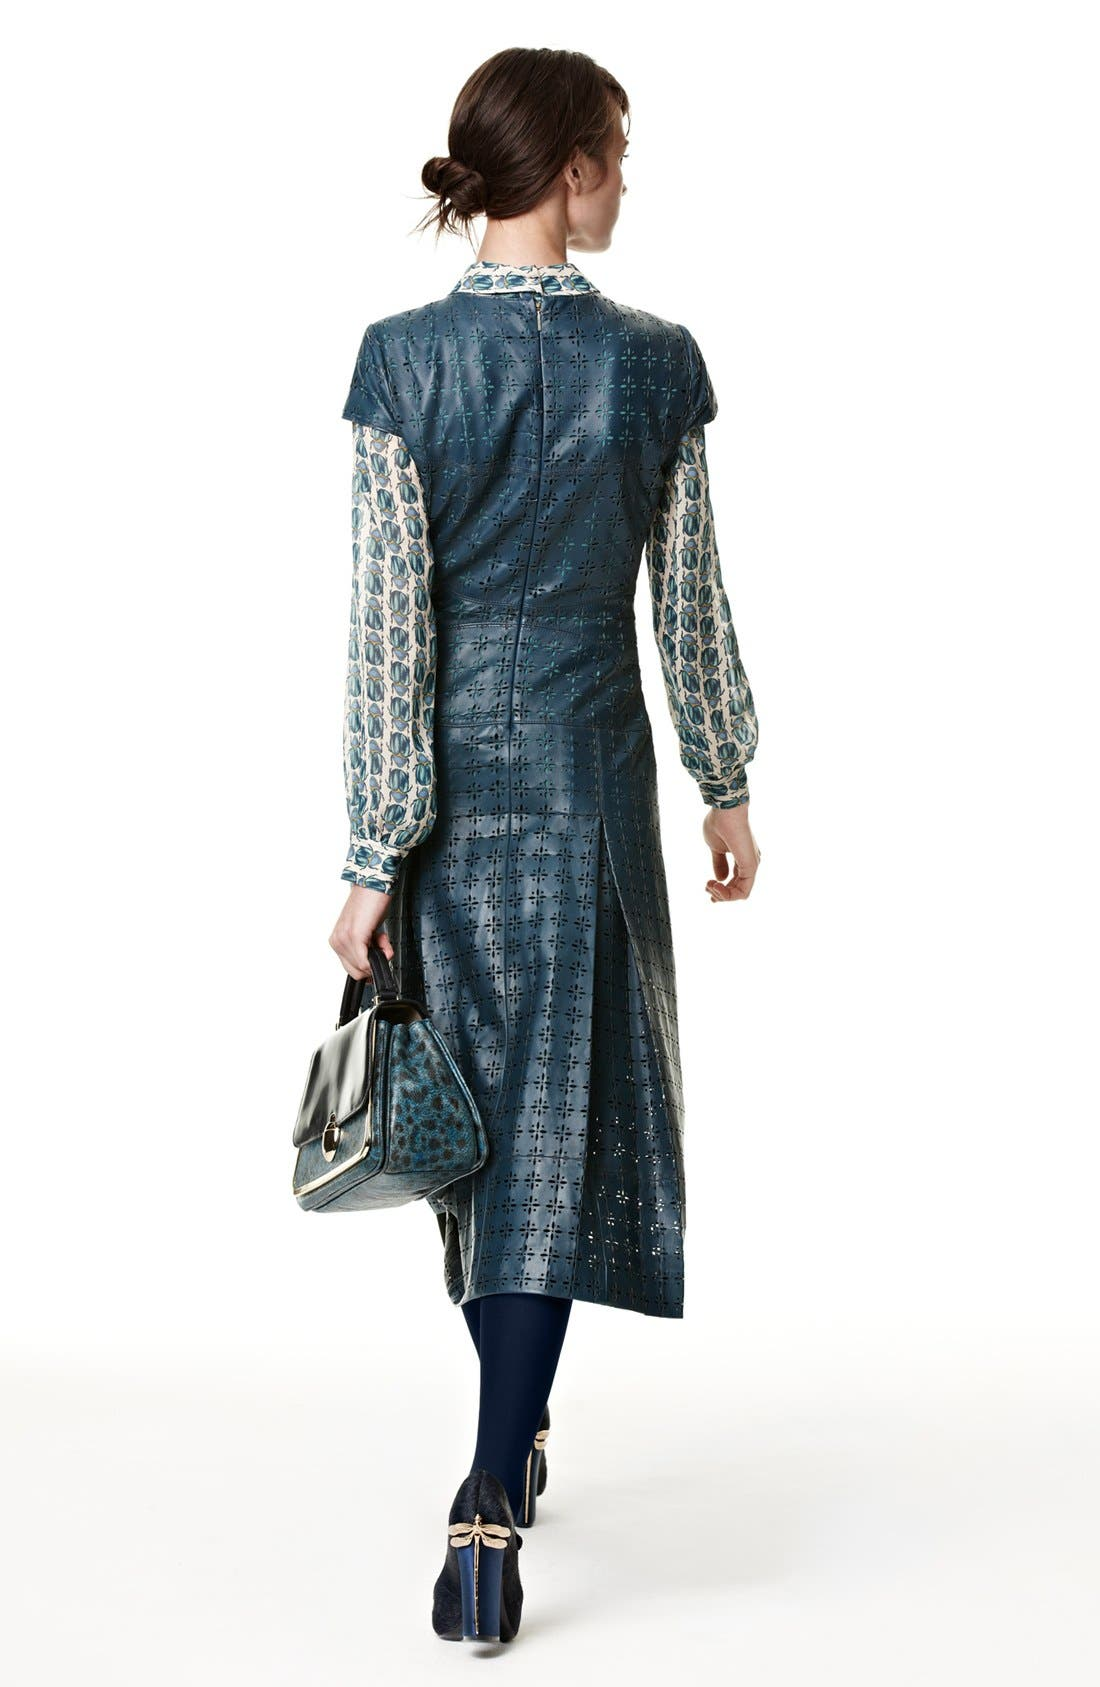 Alternate Image 1 Selected - Tory Burch Leather Midi Dress, Blouse, & Pump